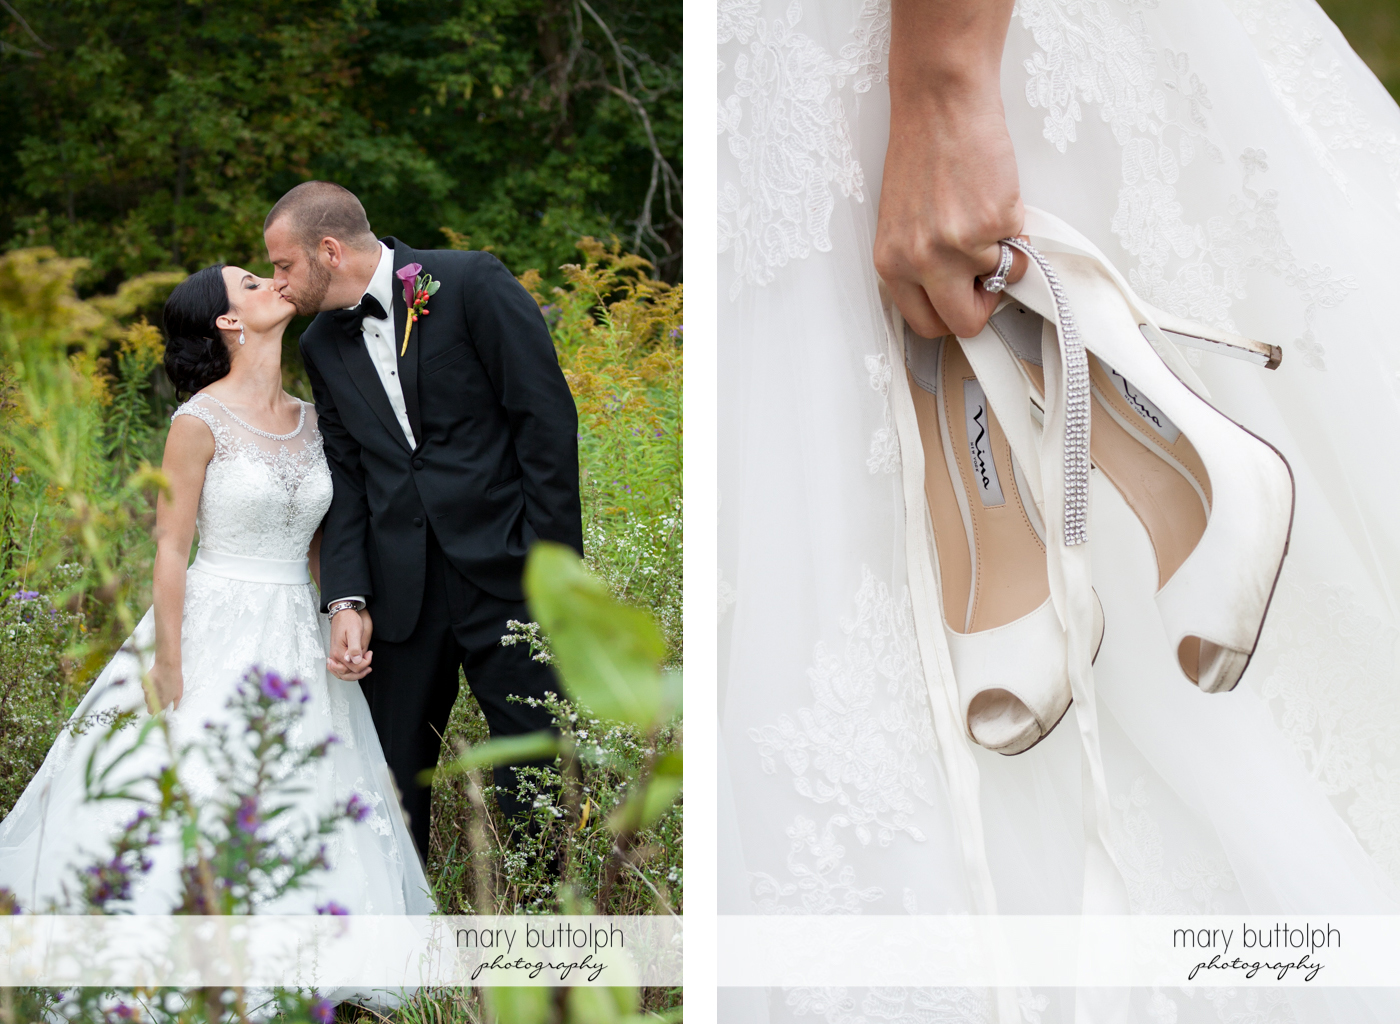 Couple kiss in the garden and the bride carries her wedding shoes at Anyela's Vineyards Wedding